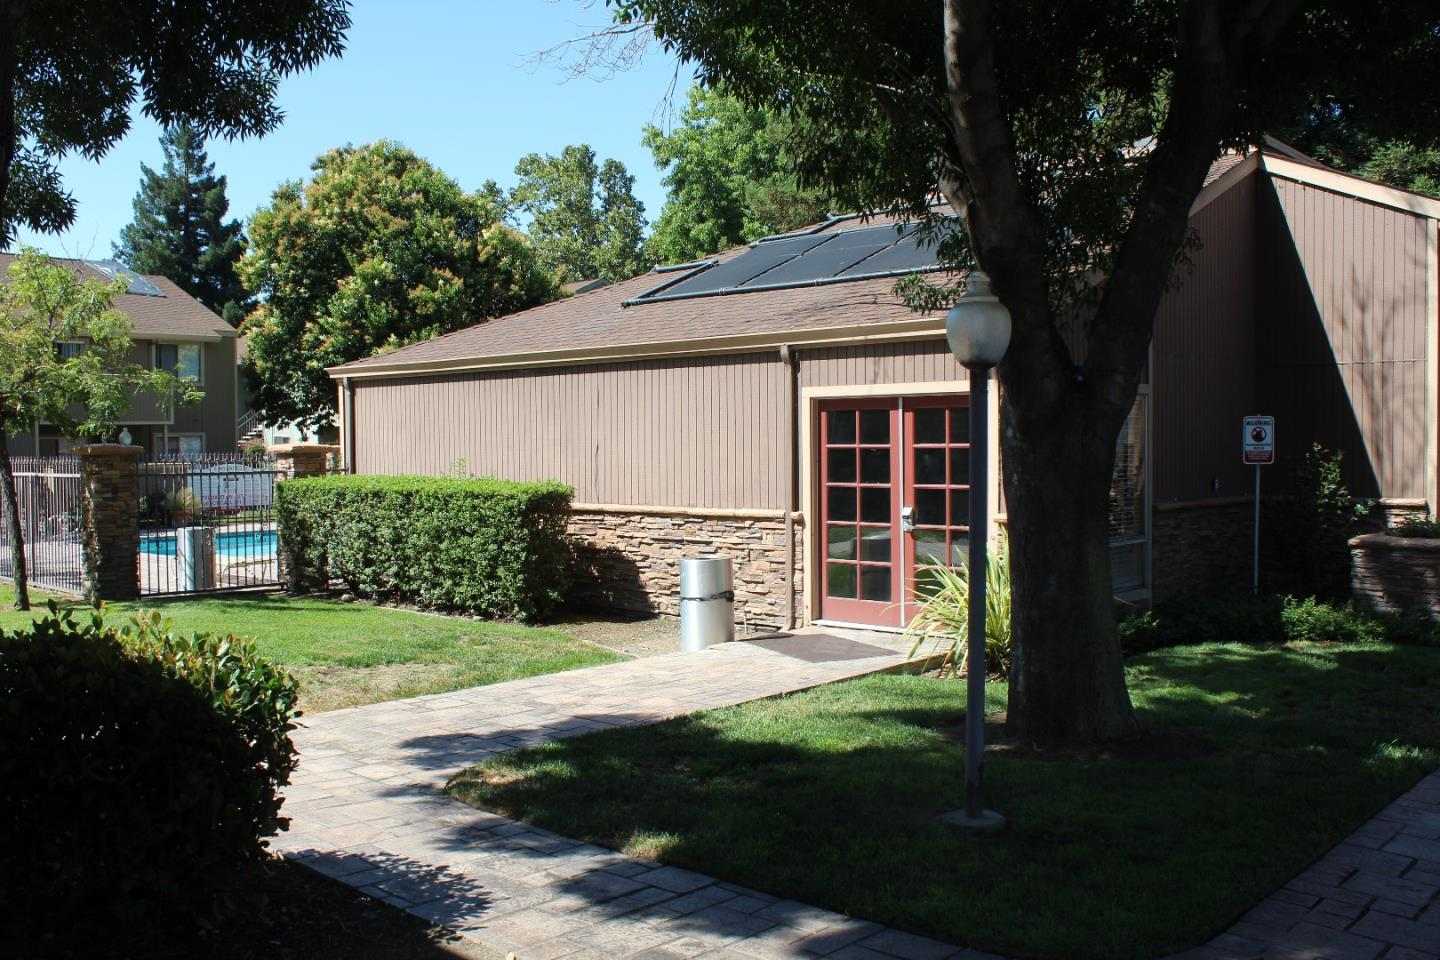 Additional photo for property listing at 3329 Foxtail Terrace  Fremont, カリフォルニア 94536 アメリカ合衆国